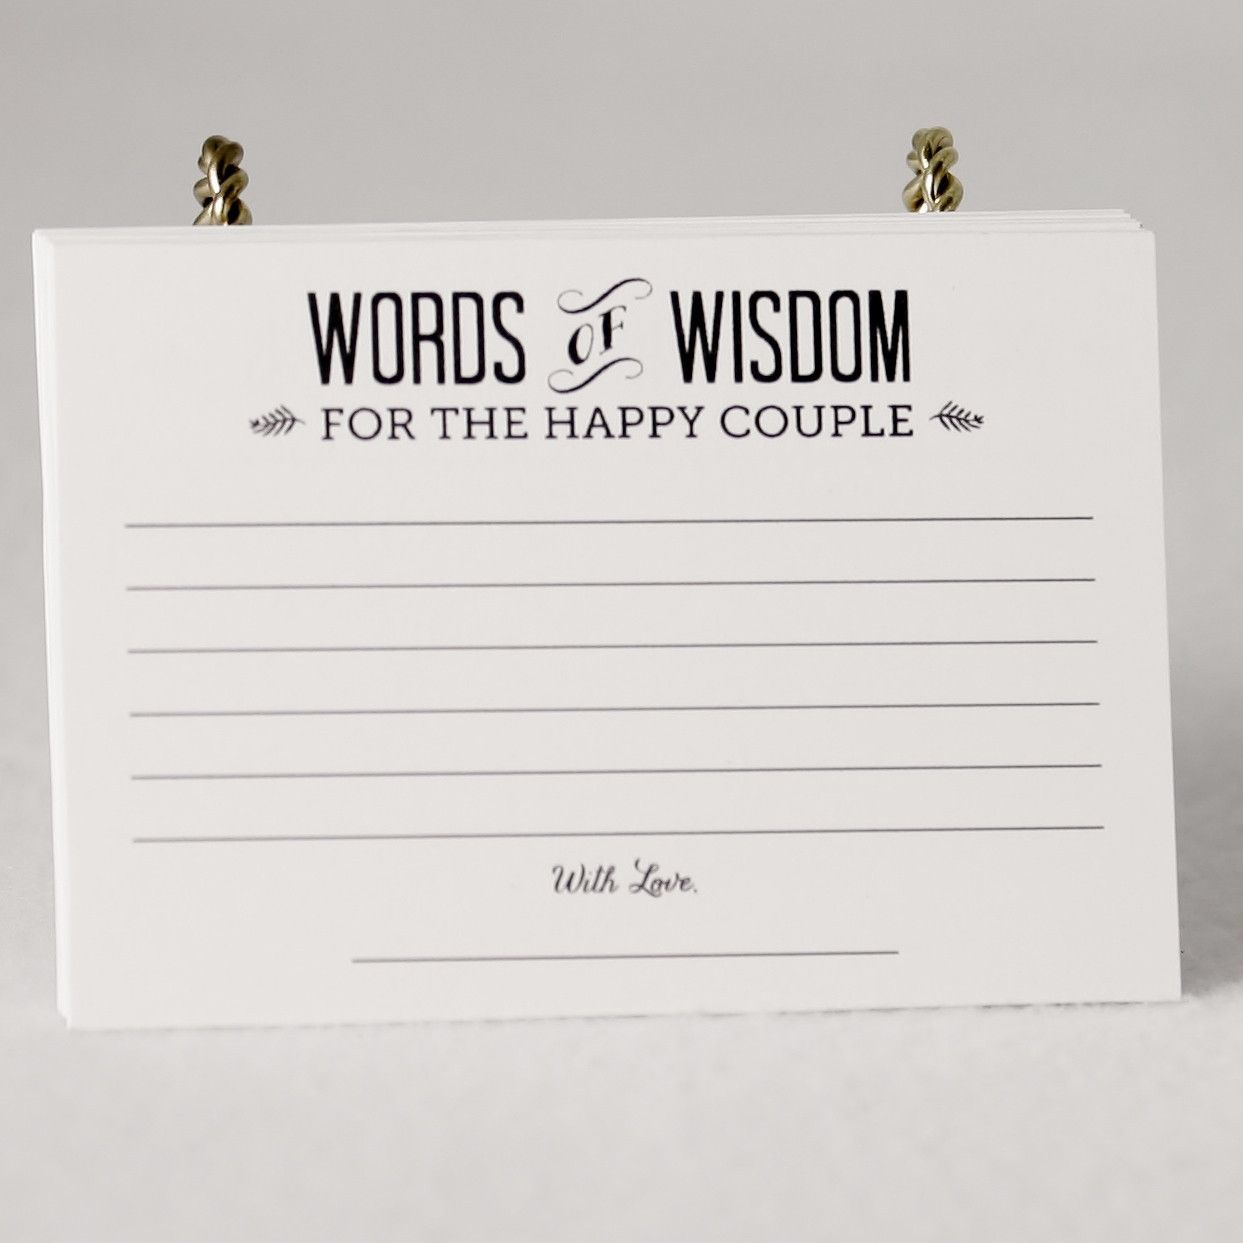 Simple Rustic Country Words of Wisdom Wedding Advice Cards